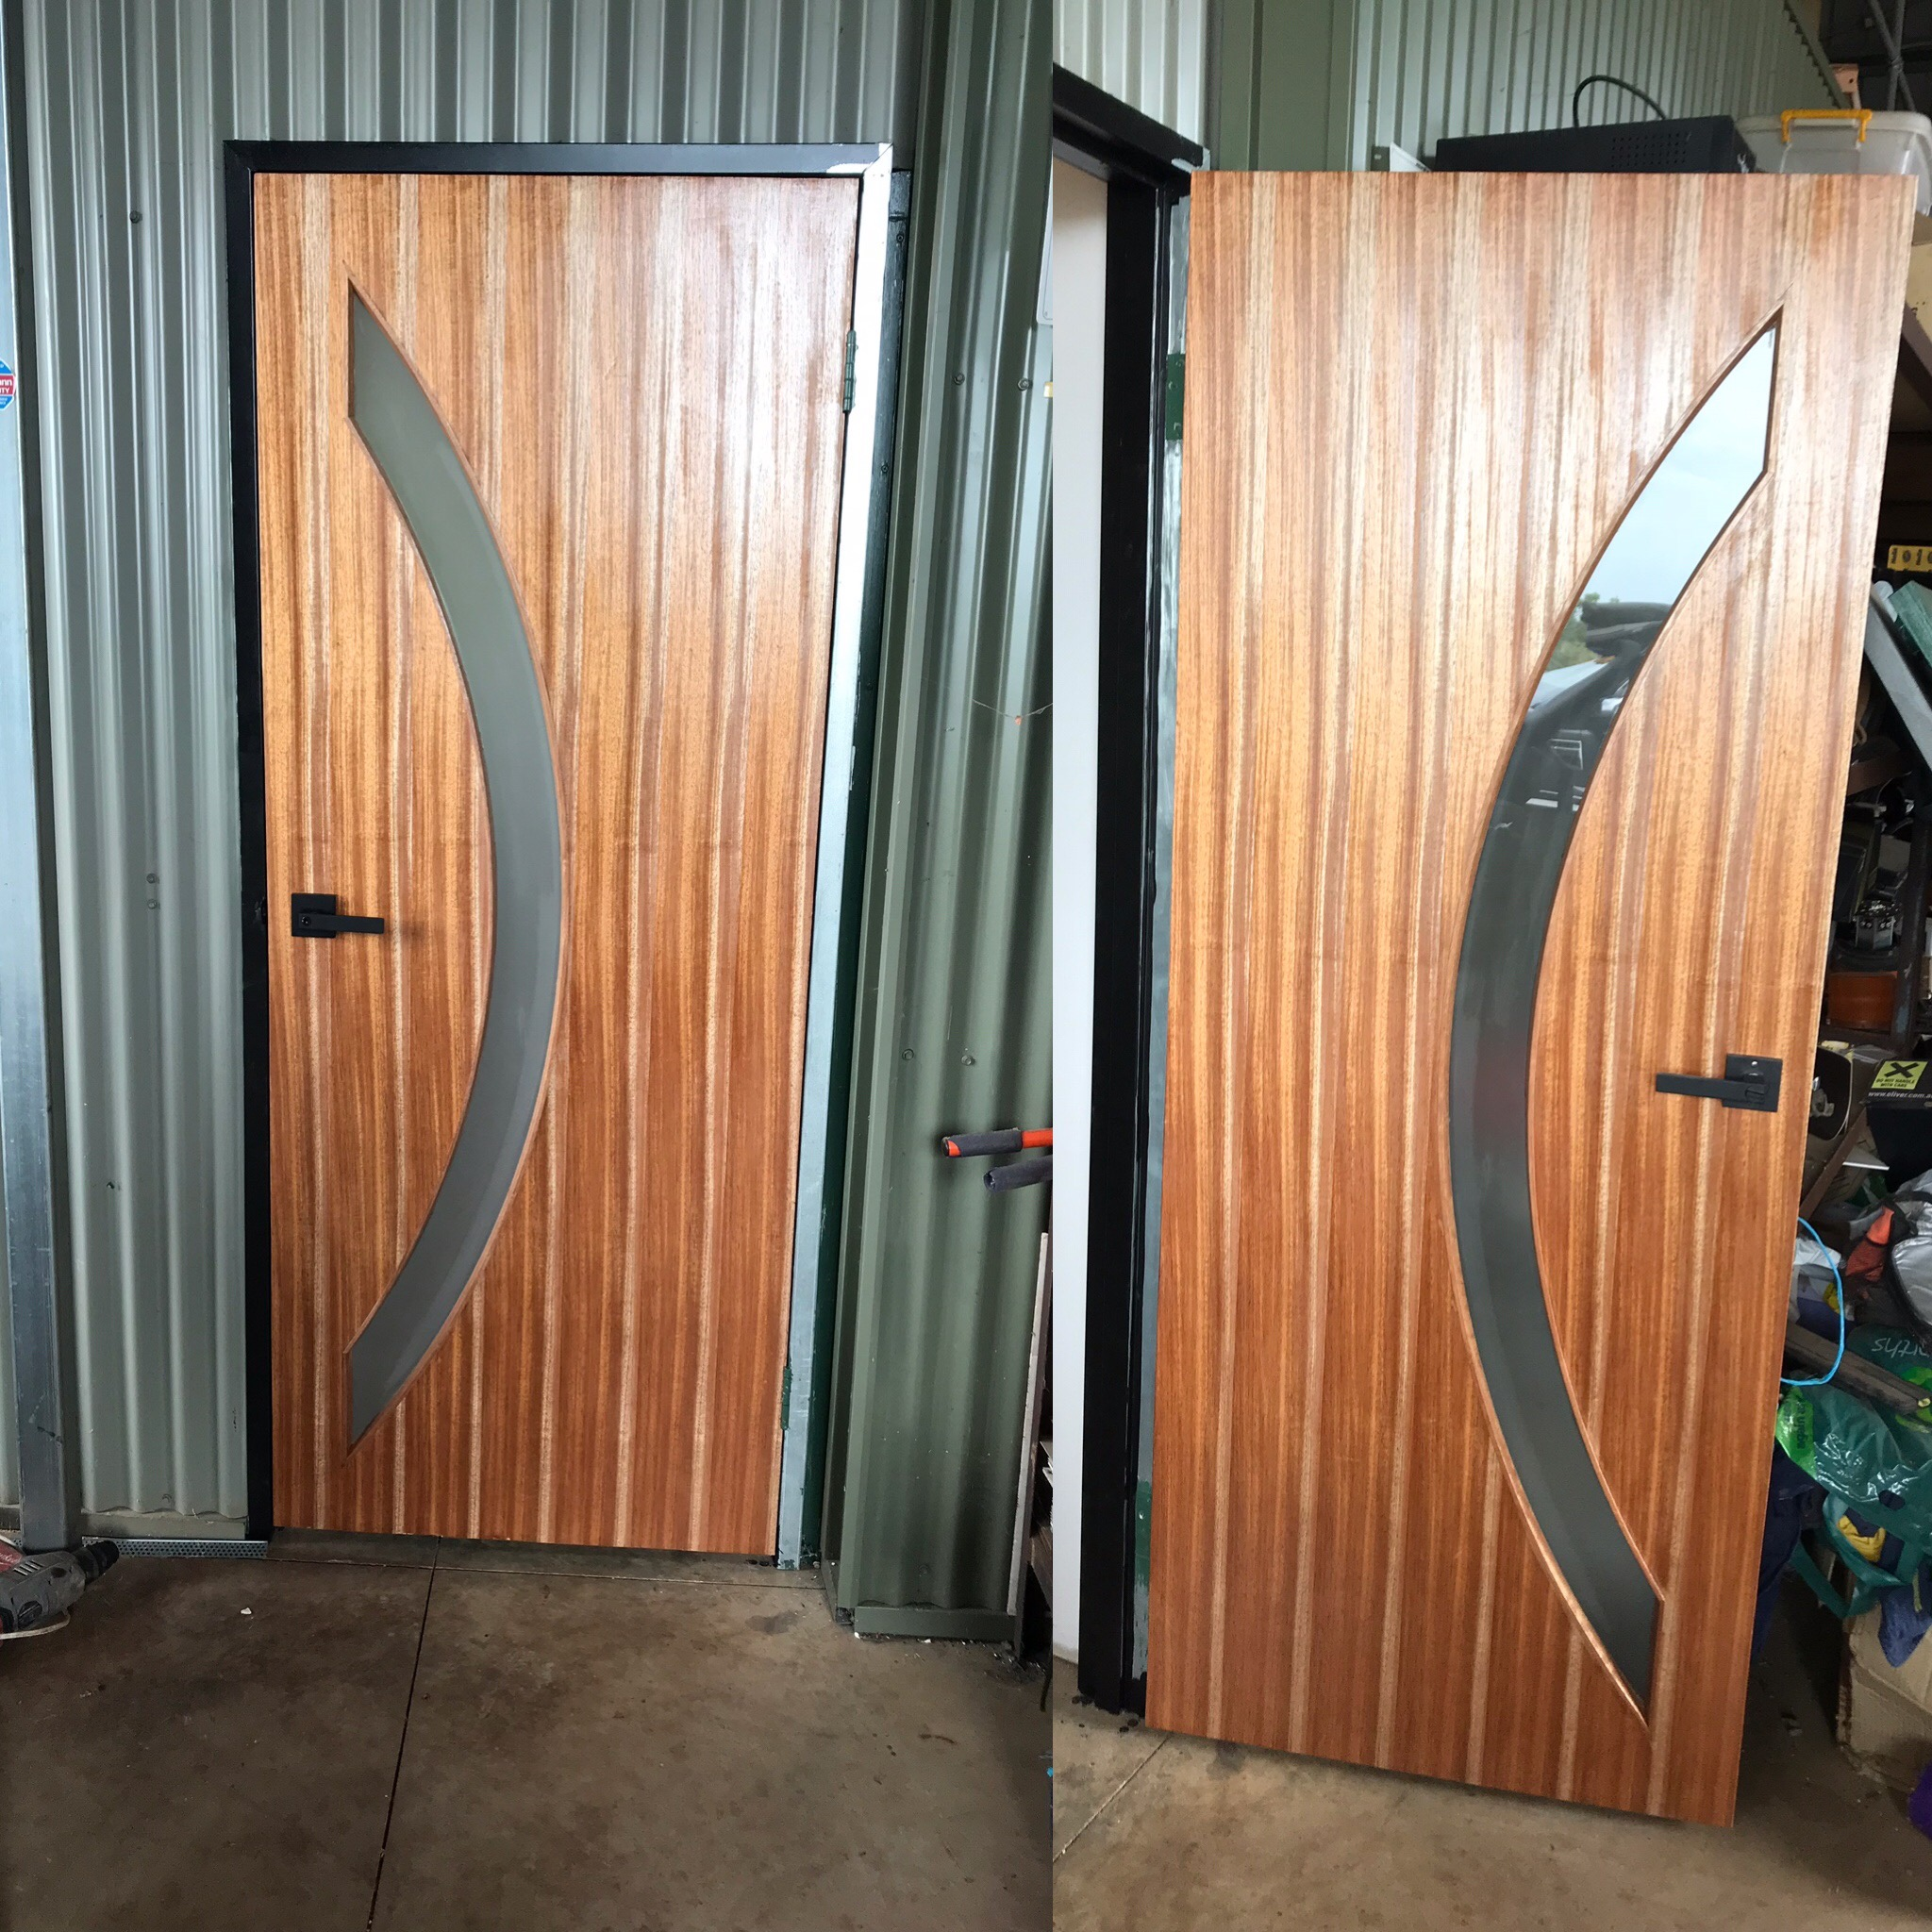 new door installed and varnished